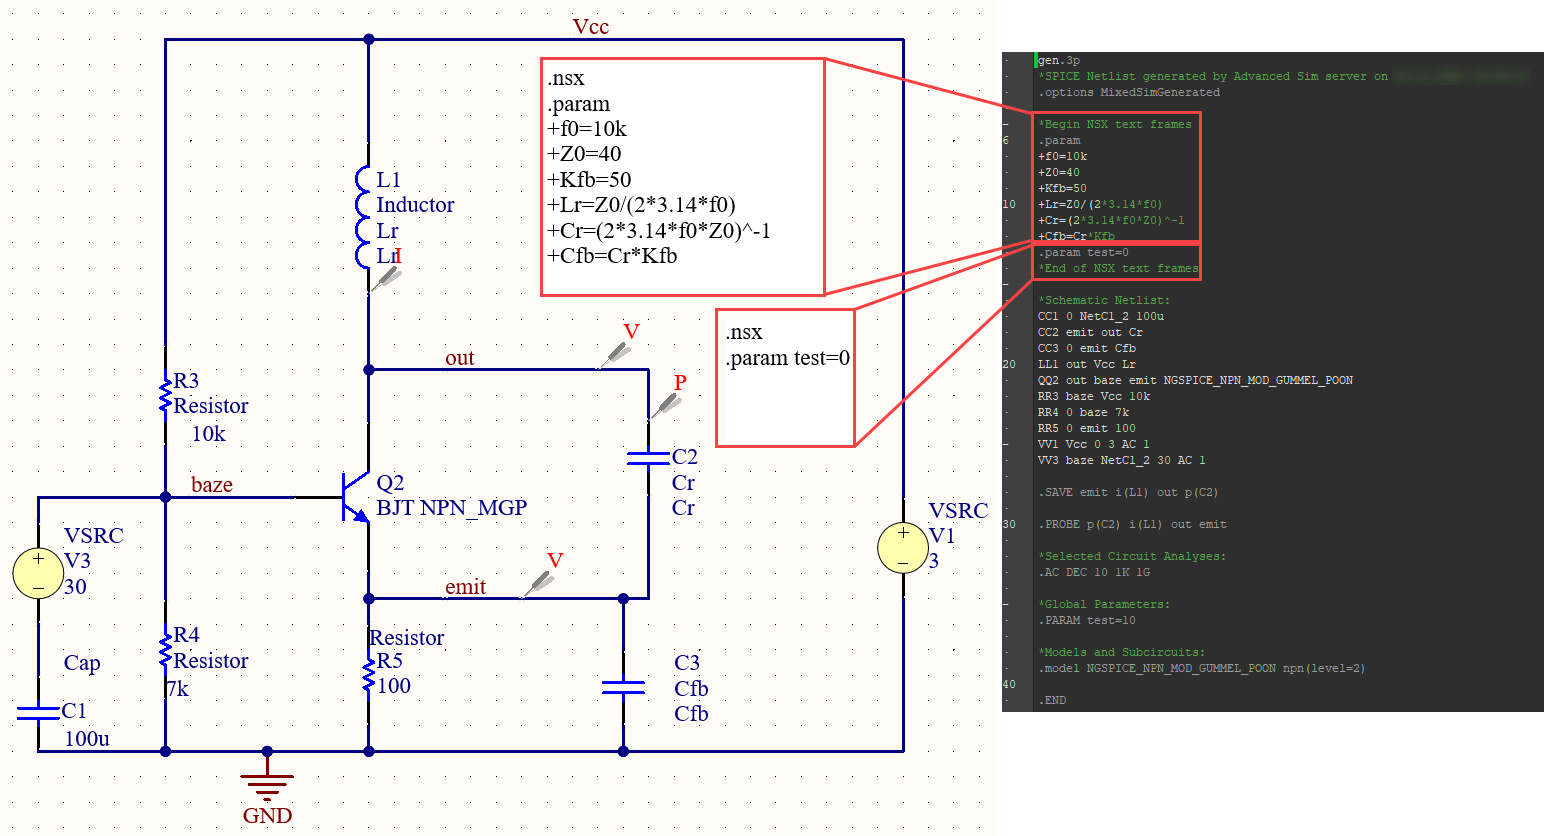 Figure 33. Display several areas of user SPICE code.